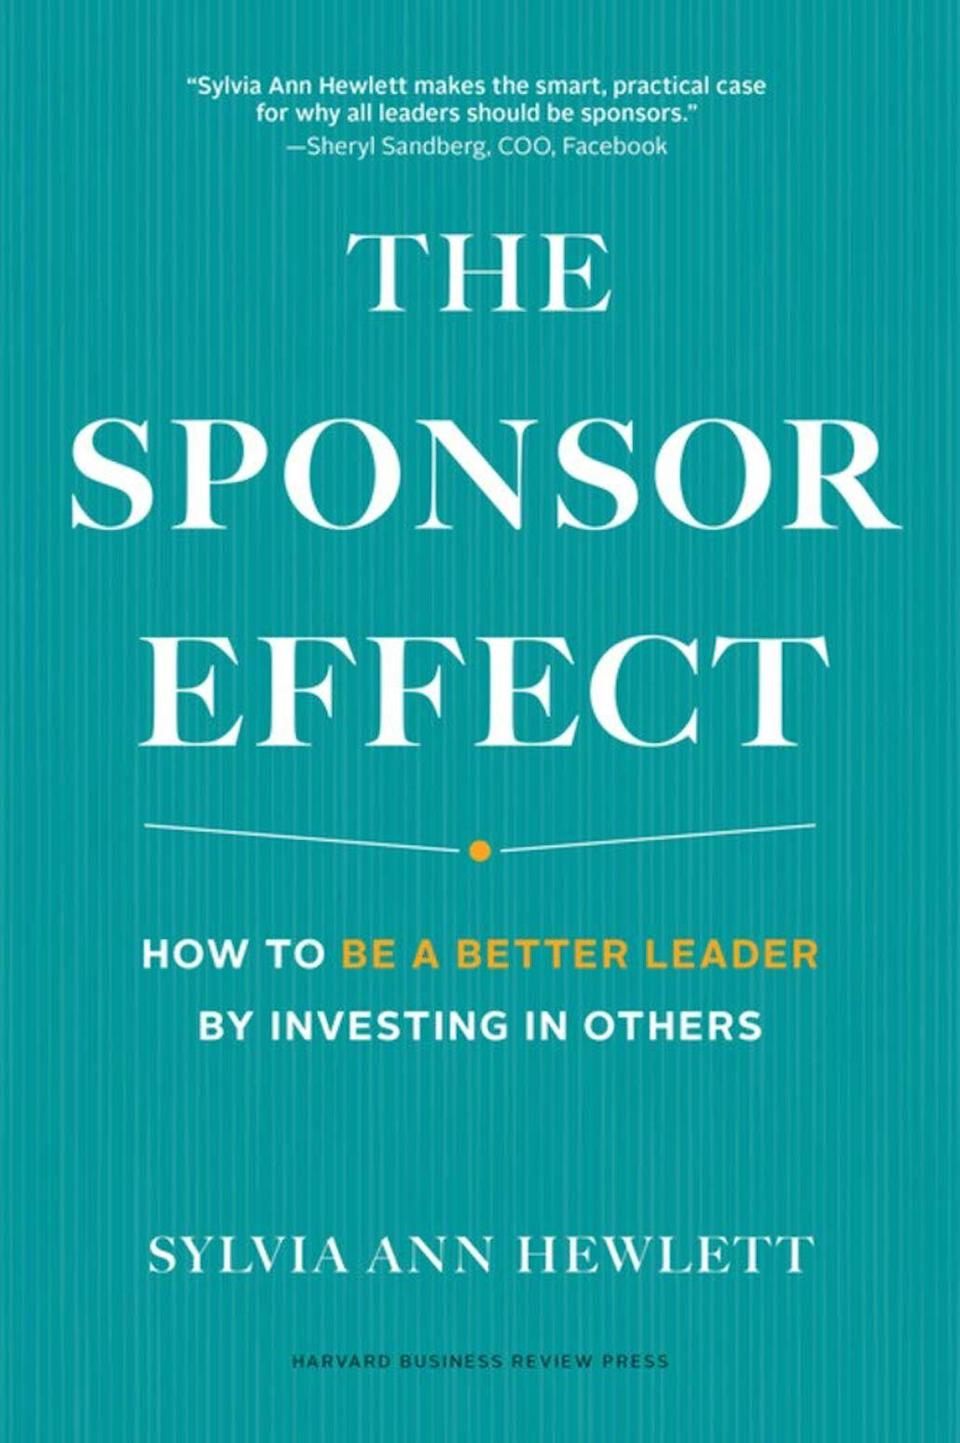 The Sponsor Effect: How to Be a Better Leader by Investing in Others by Sylvia Ann Hewlett